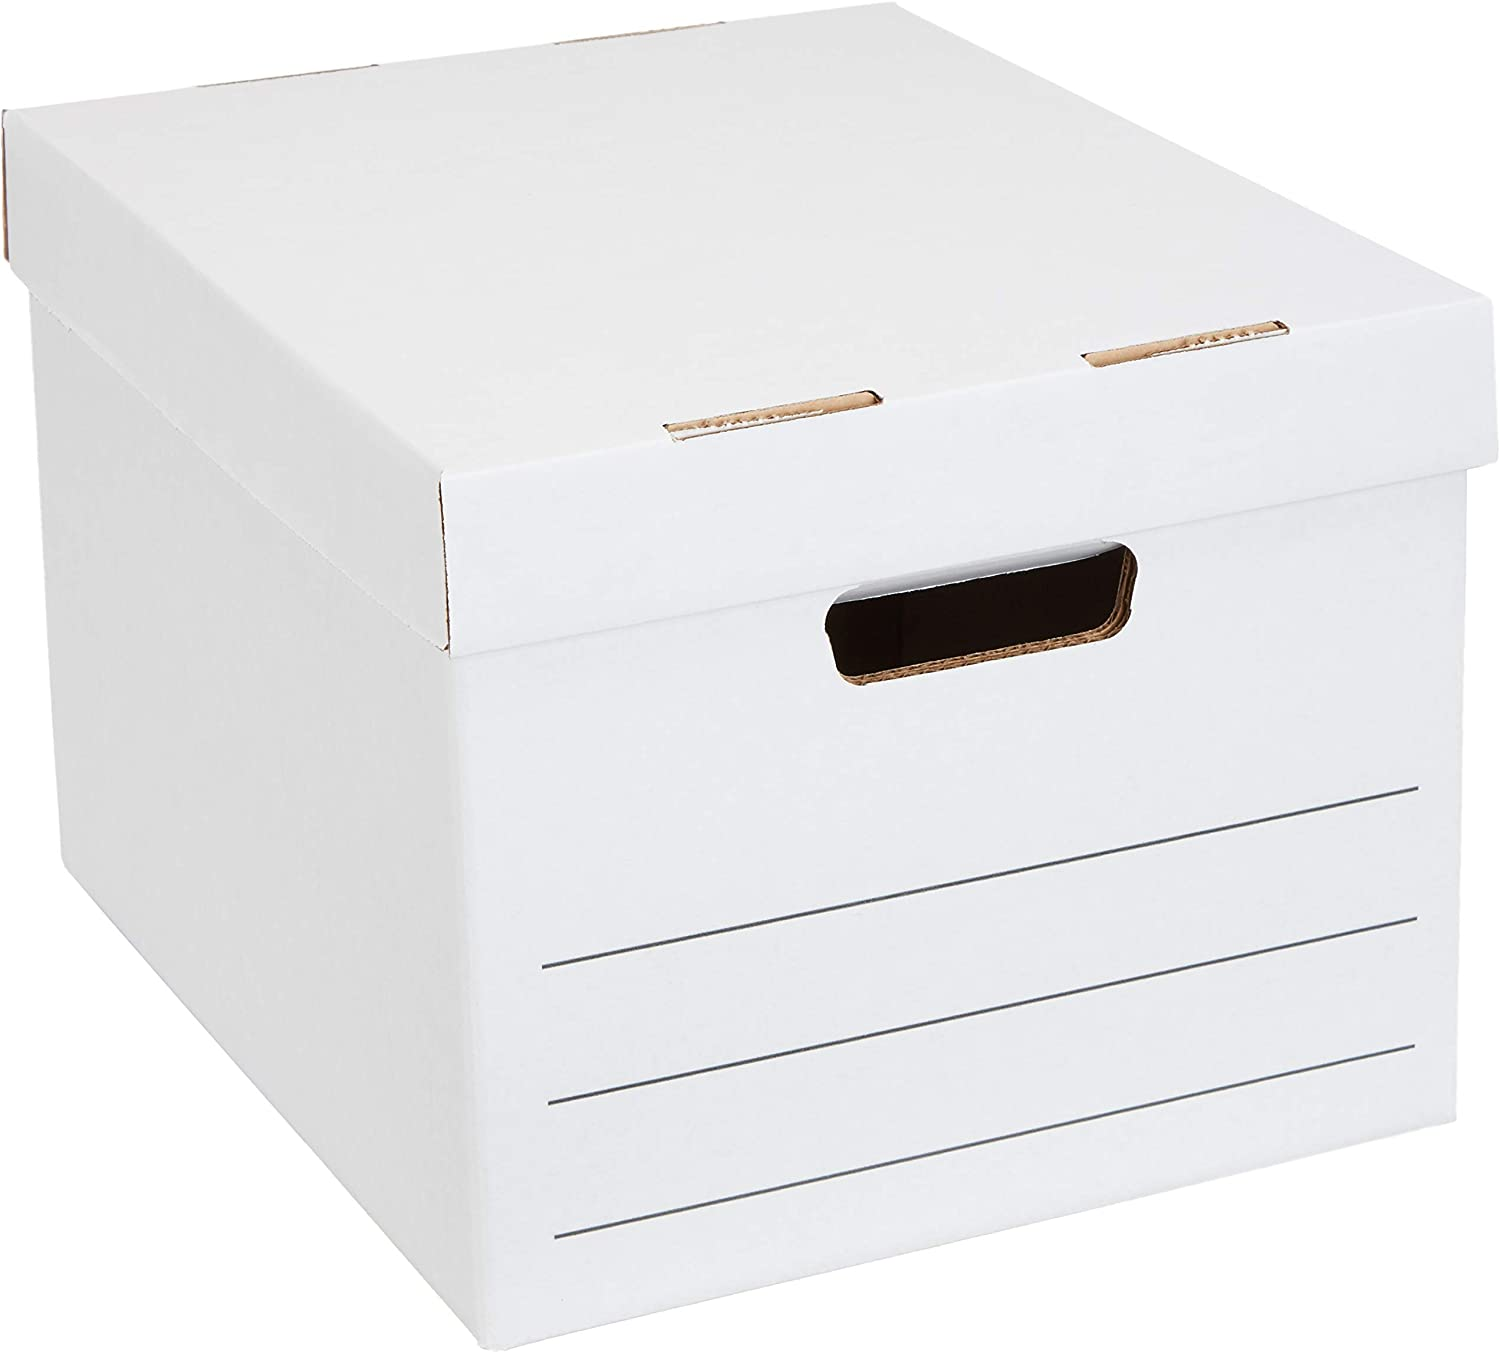 AmazonBasics Medium Duty Storage Filing Box with Lift-Off Lid - Pack of 20, Letter / Legal Size